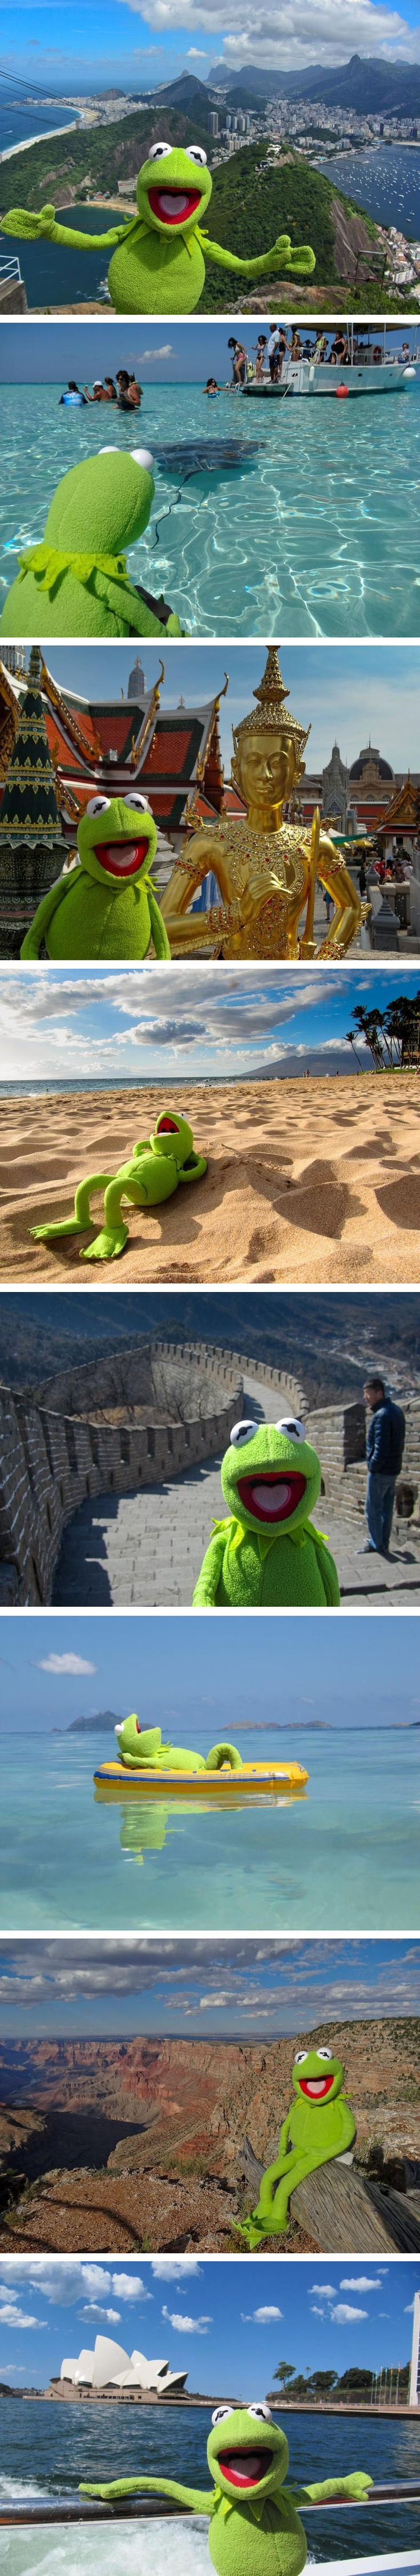 Kermit the Frog's Vacation Around the World  The real question is whether Kermit would go with me.